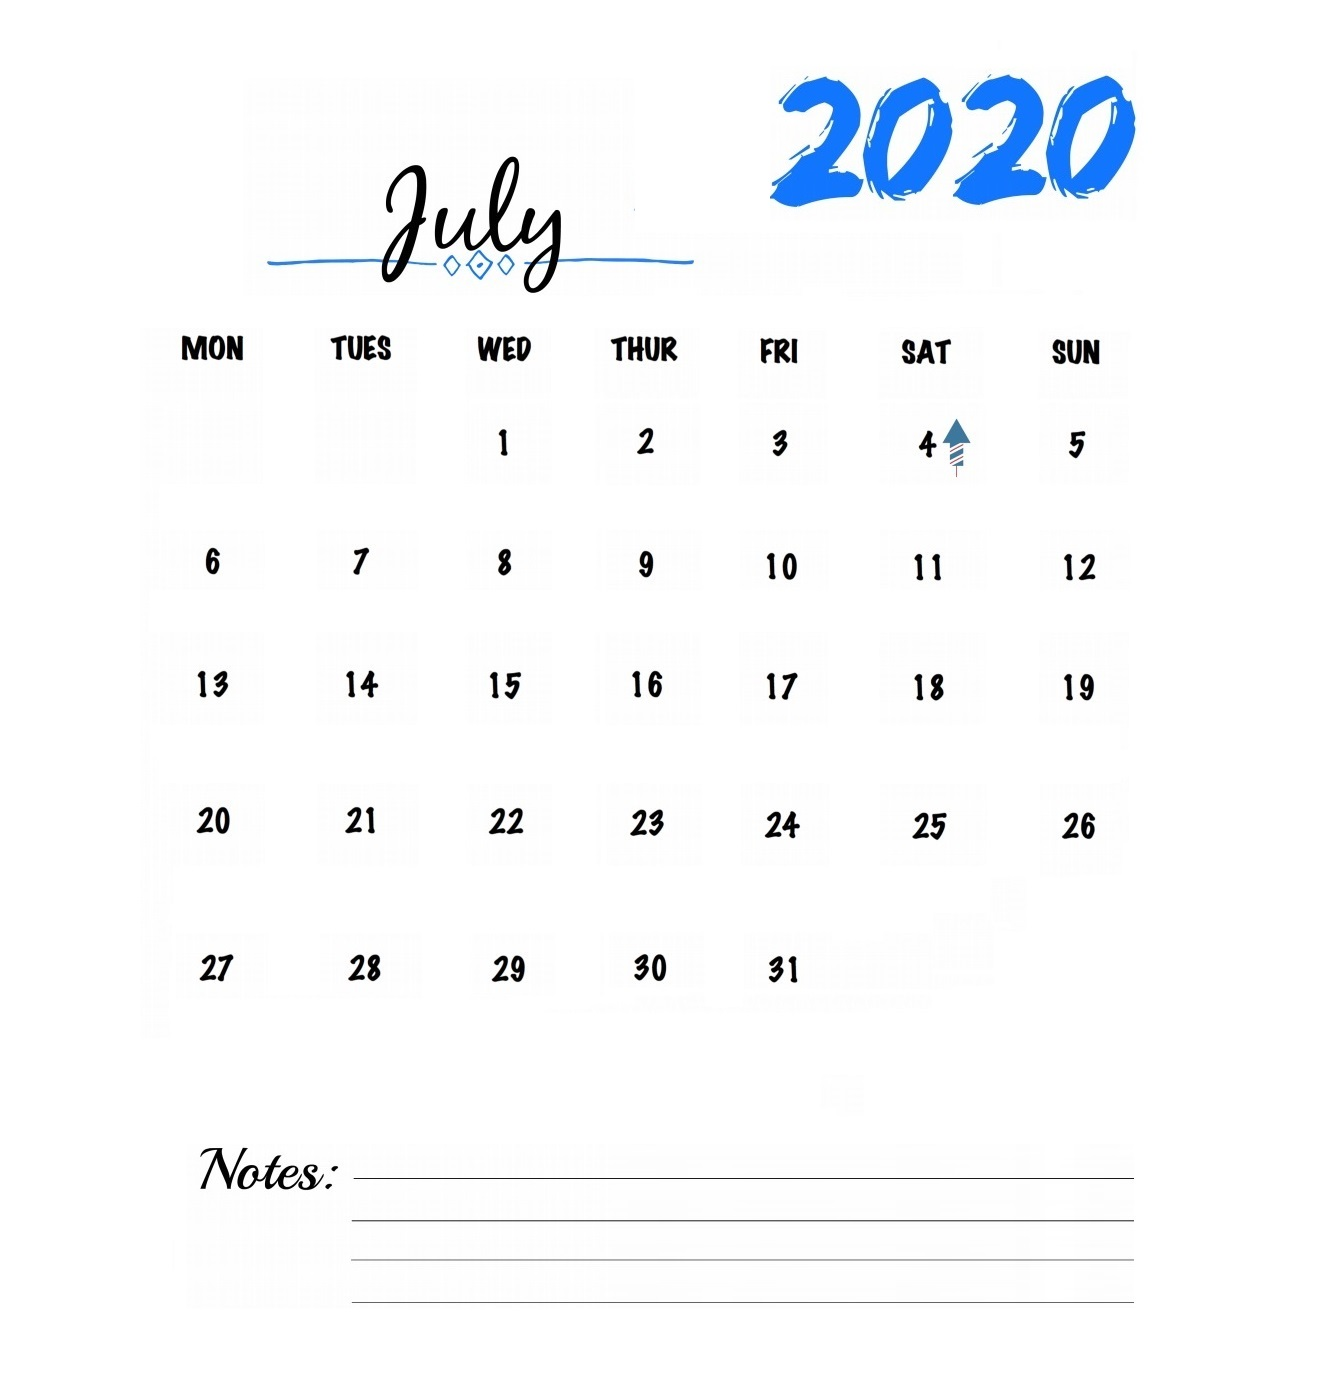 July 2020 Table Calendar